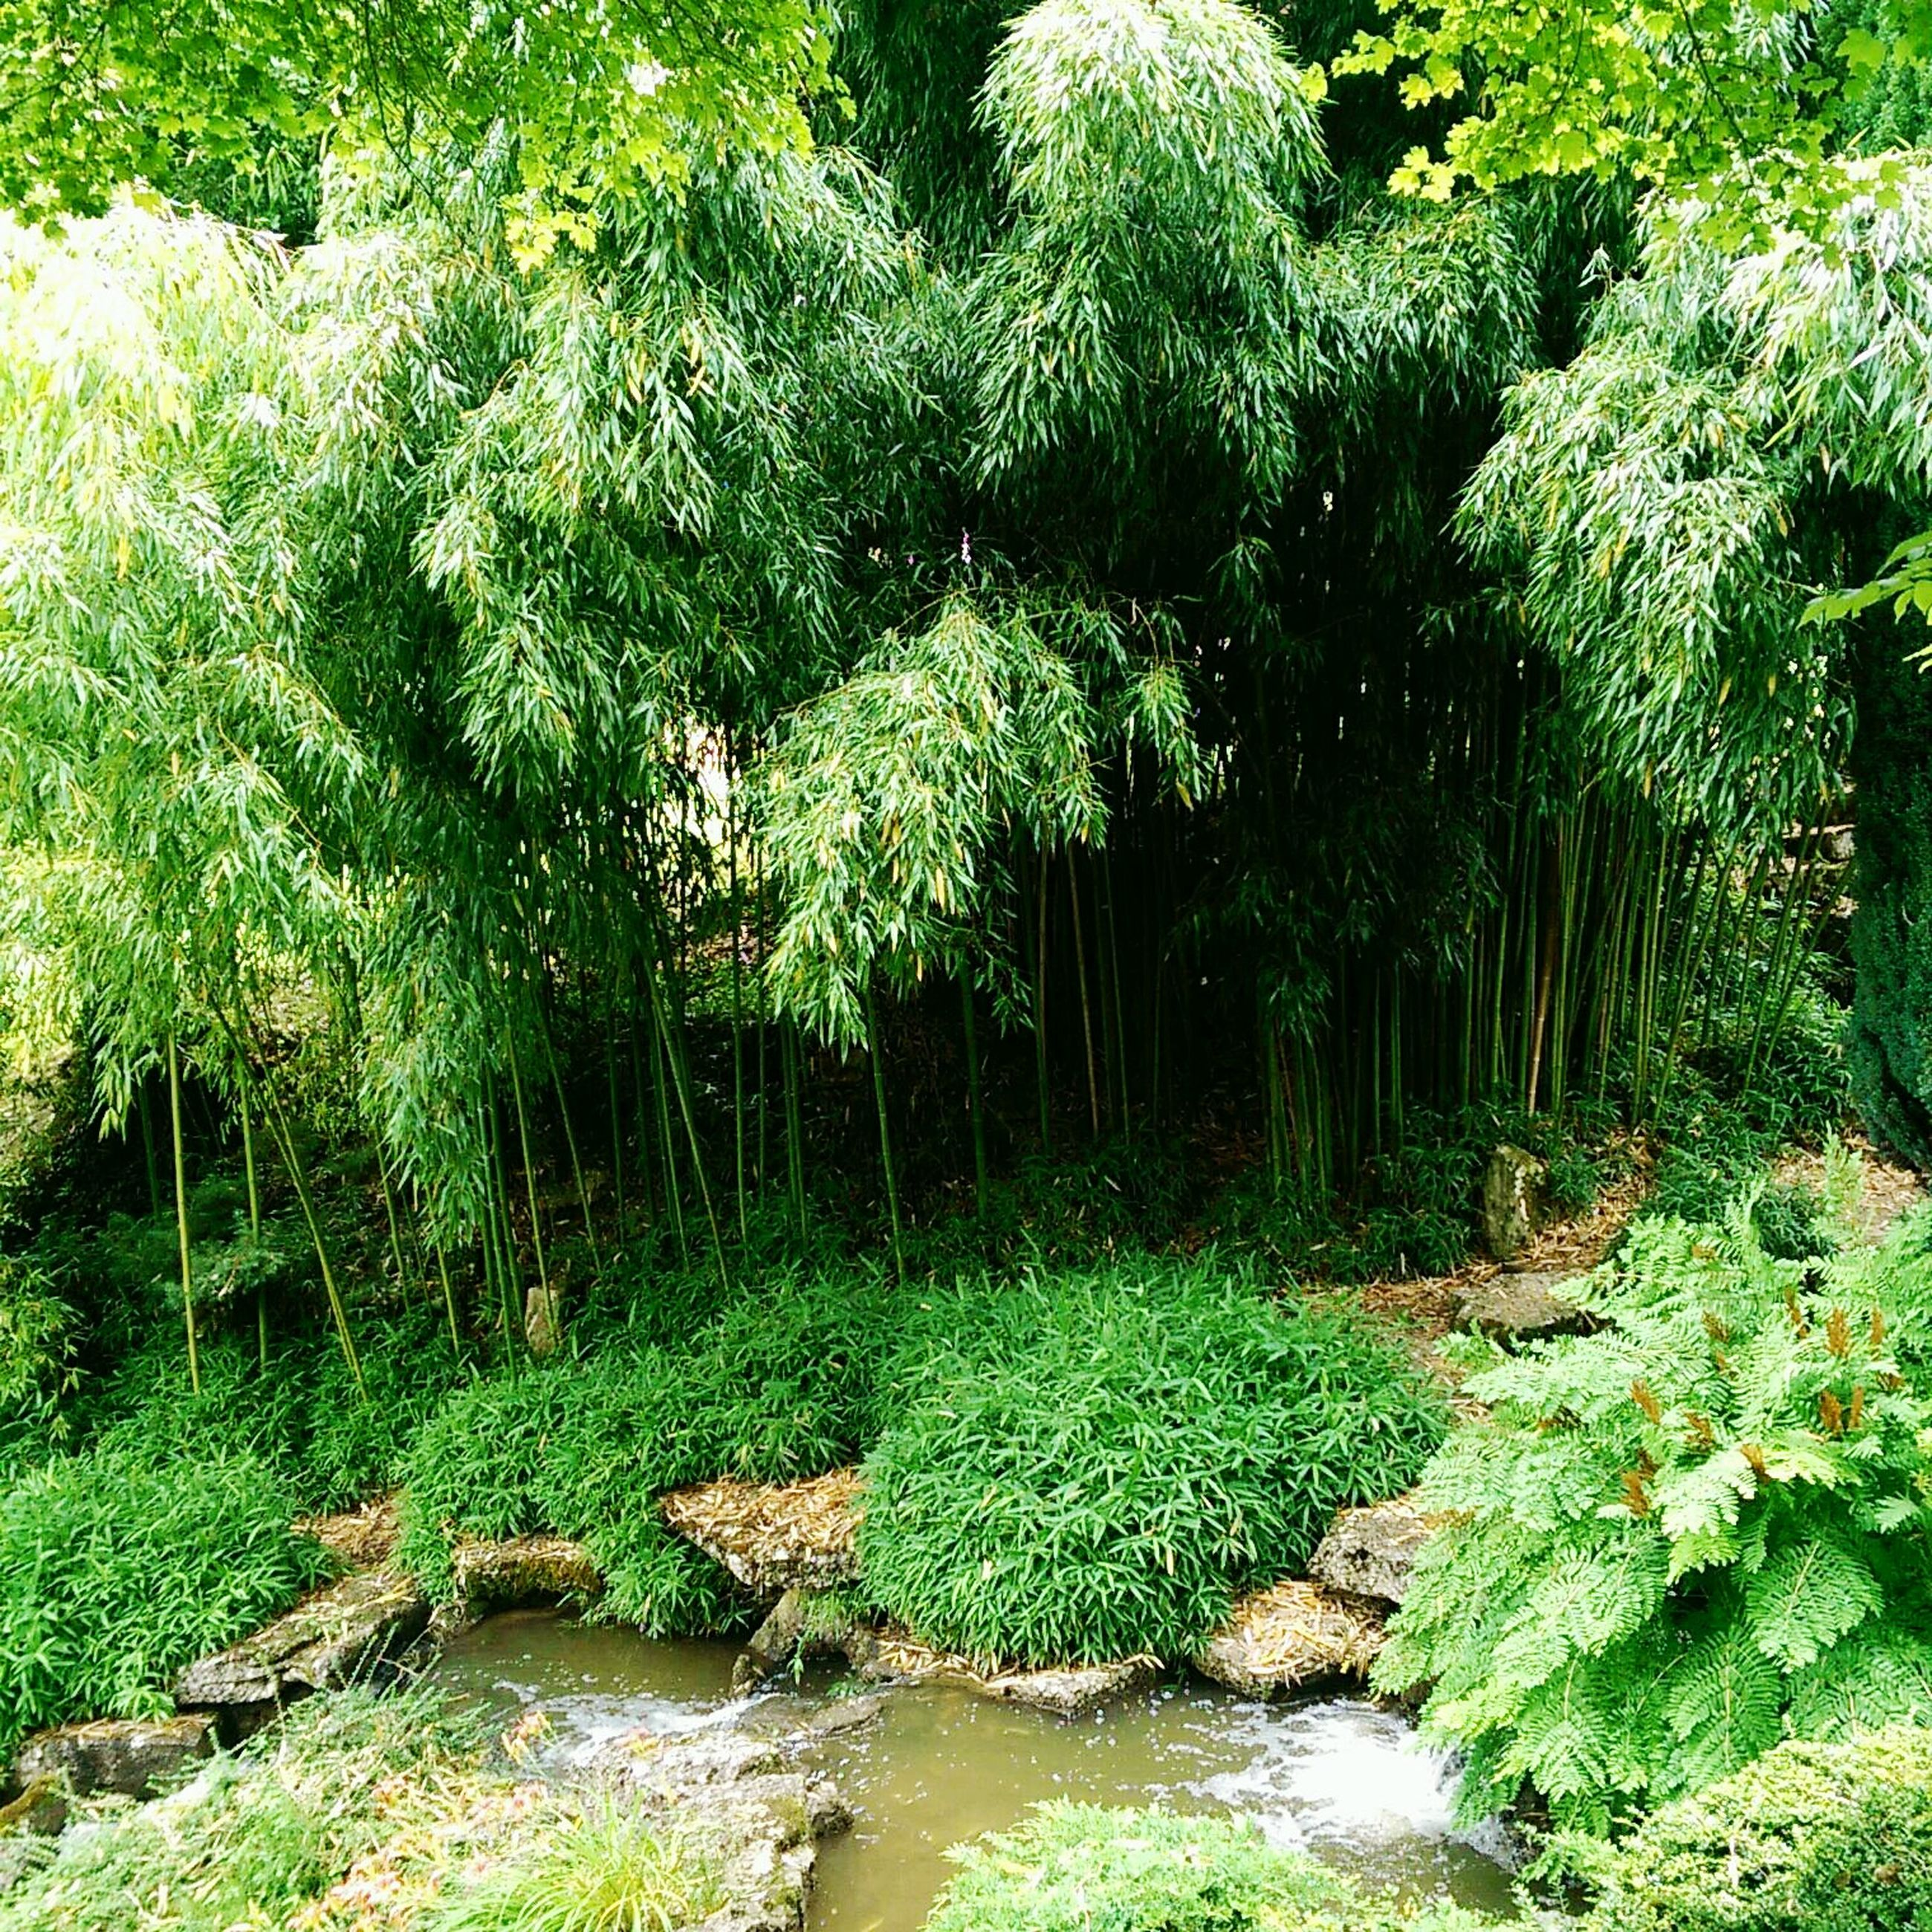 green color, growth, plant, nature, tree, tranquility, beauty in nature, tranquil scene, lush foliage, stream, forest, scenics, green, grass, growing, day, outdoors, no people, sunlight, moss